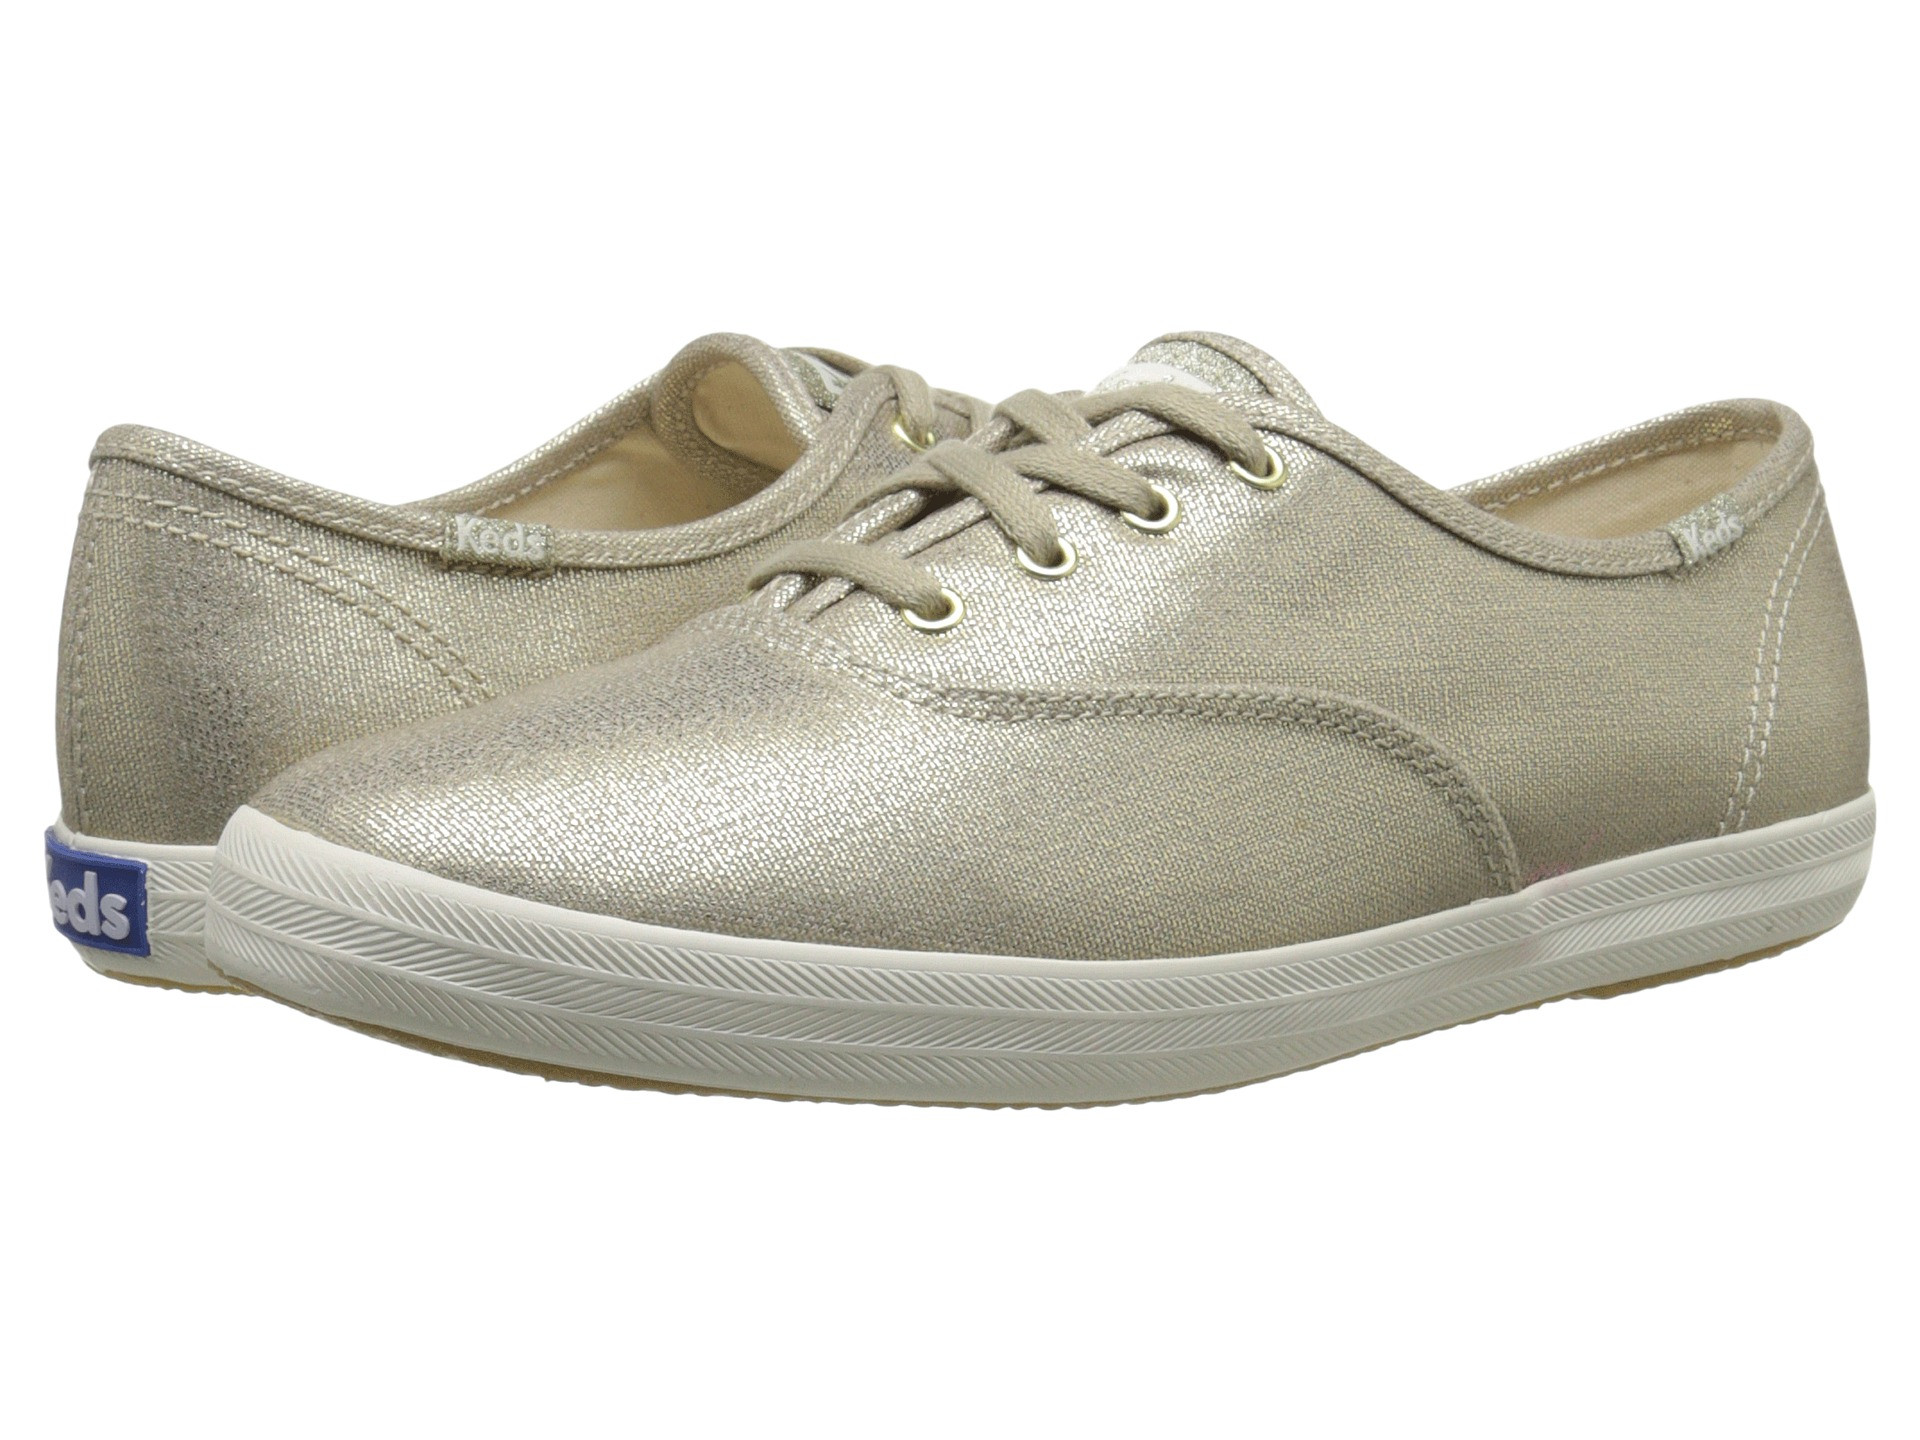 Make a cool and calm update to your outfit with the sweet Champion Metallic  Canvas from Keds.